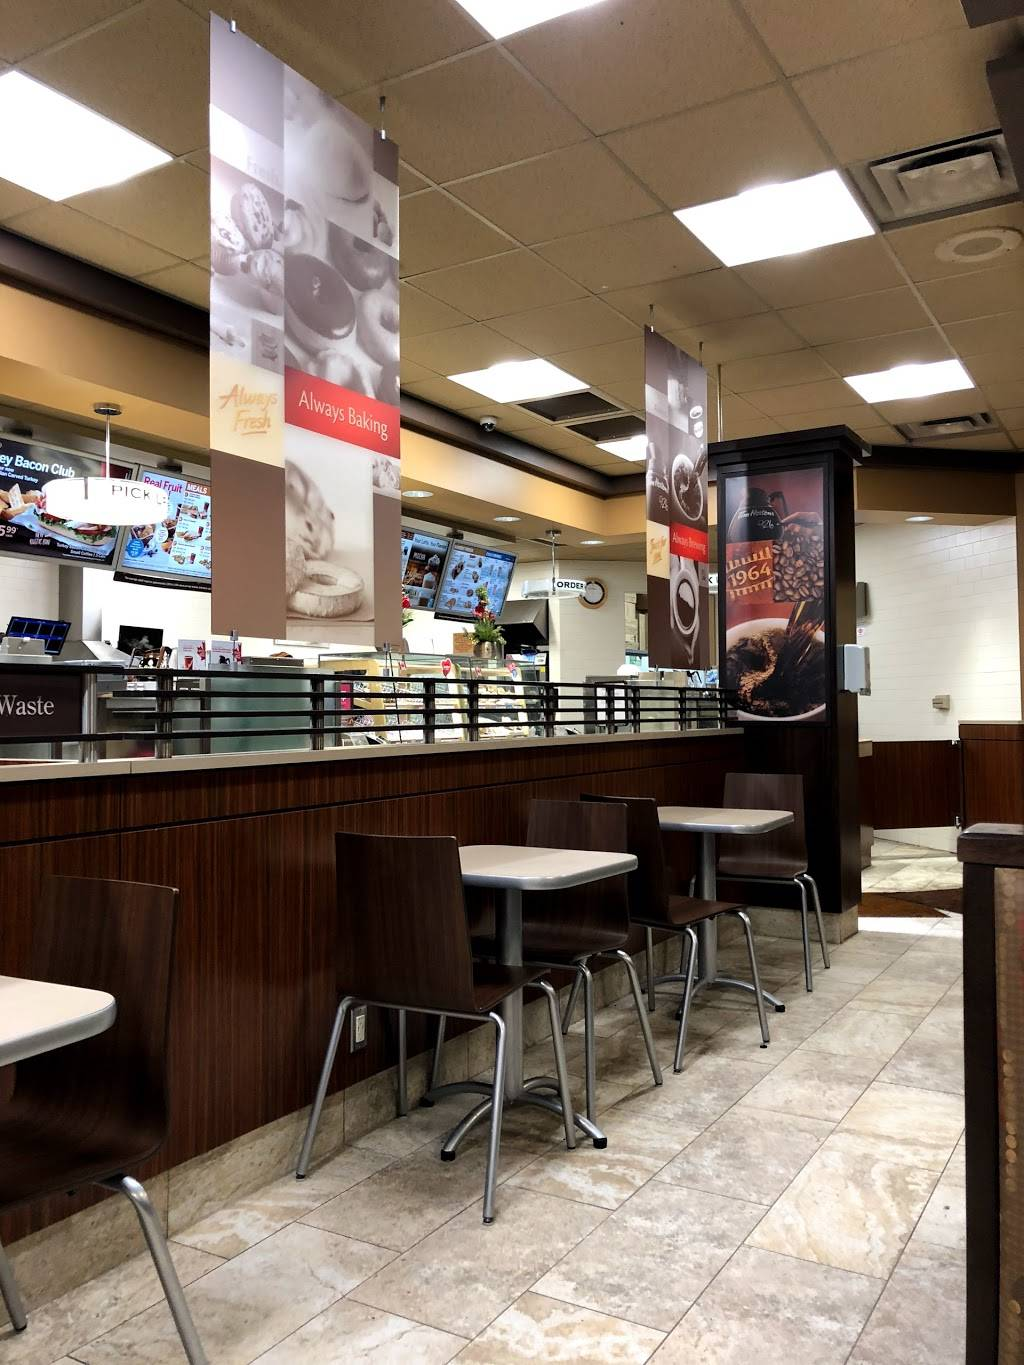 Tim Hortons | cafe | 8262 ON-35, Orono, ON L0B 1M0, Canada | 9059838100 OR +1 905-983-8100